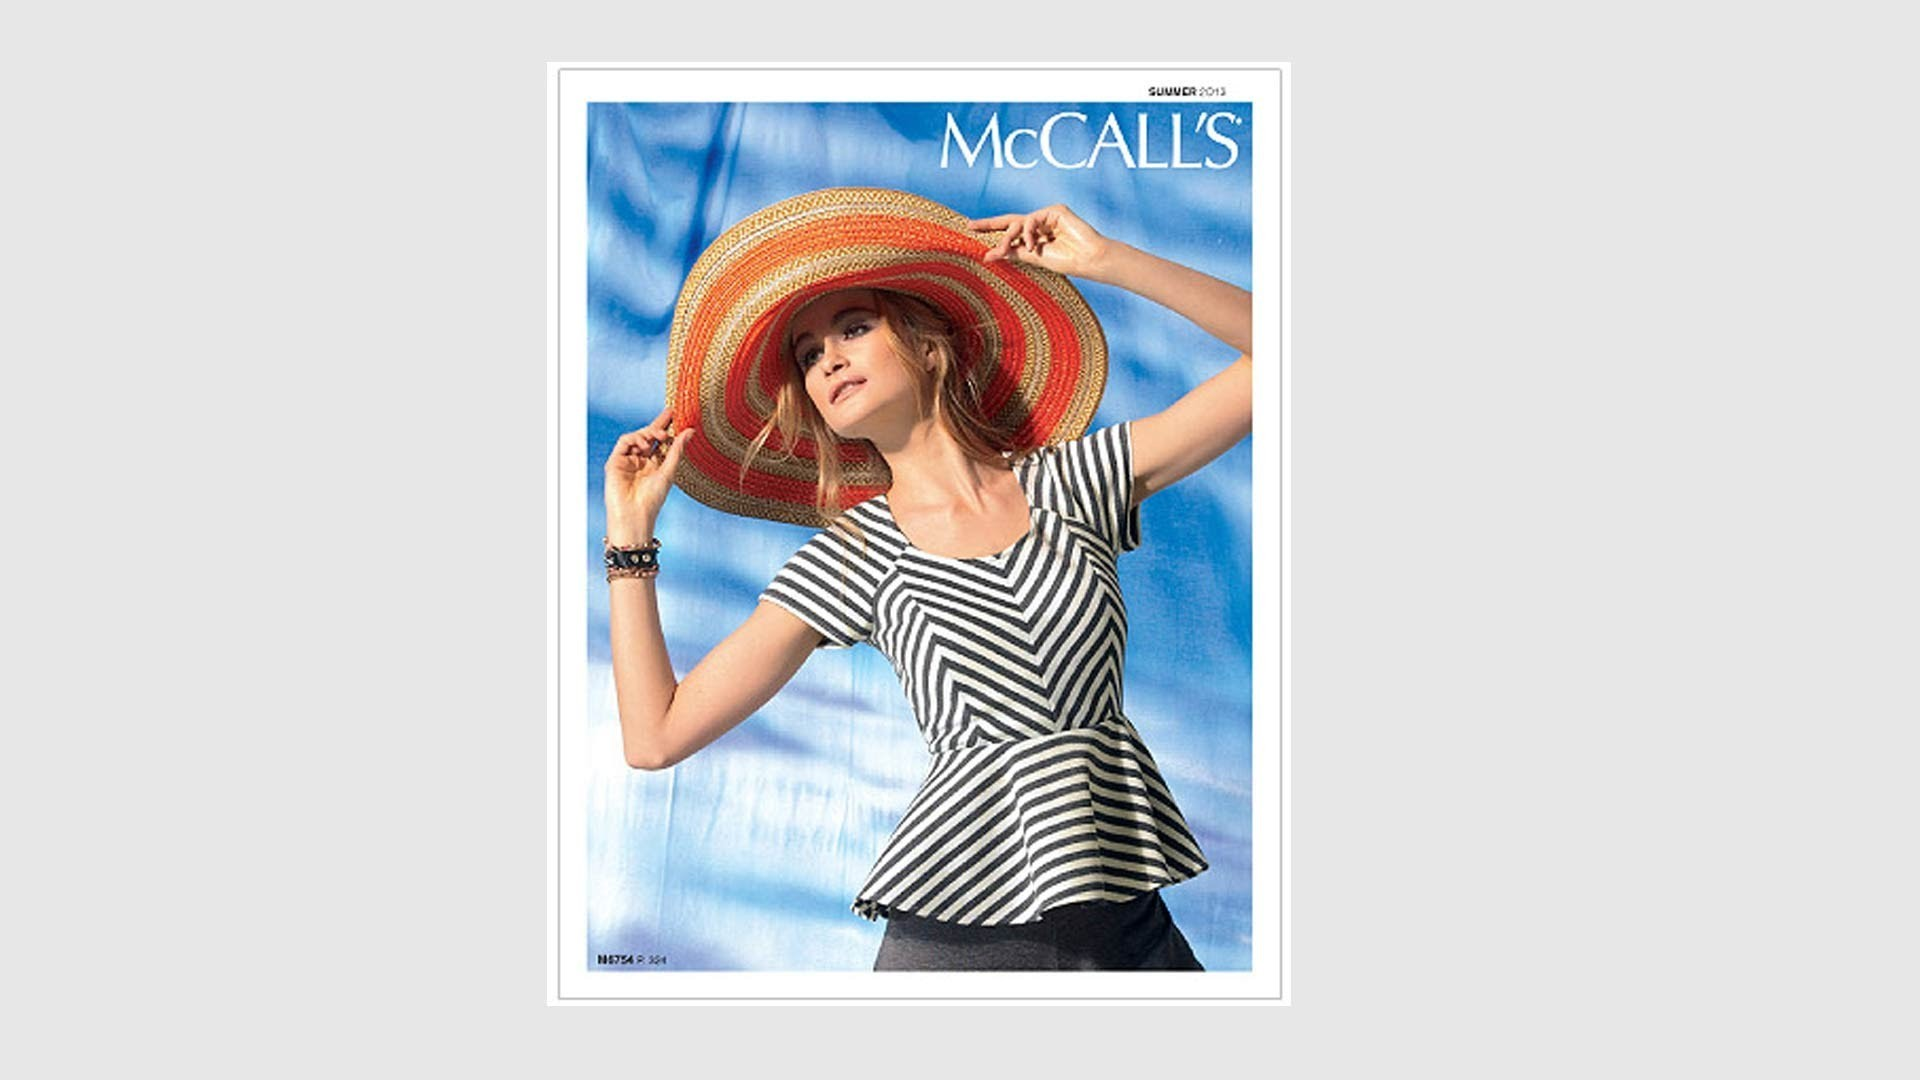 How To Use The McCall's Lookbook